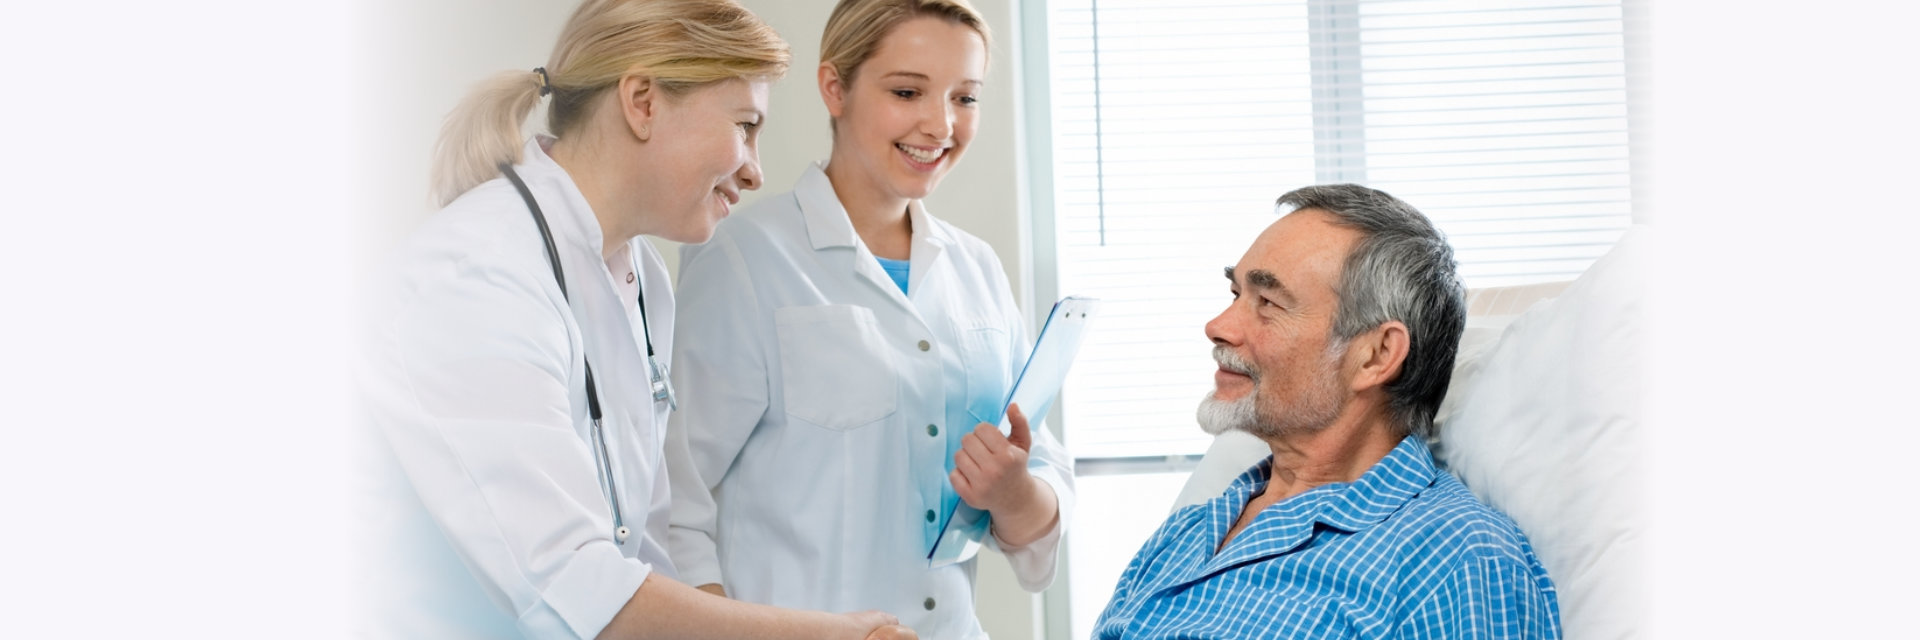 nurse and doctor visiting elderly man